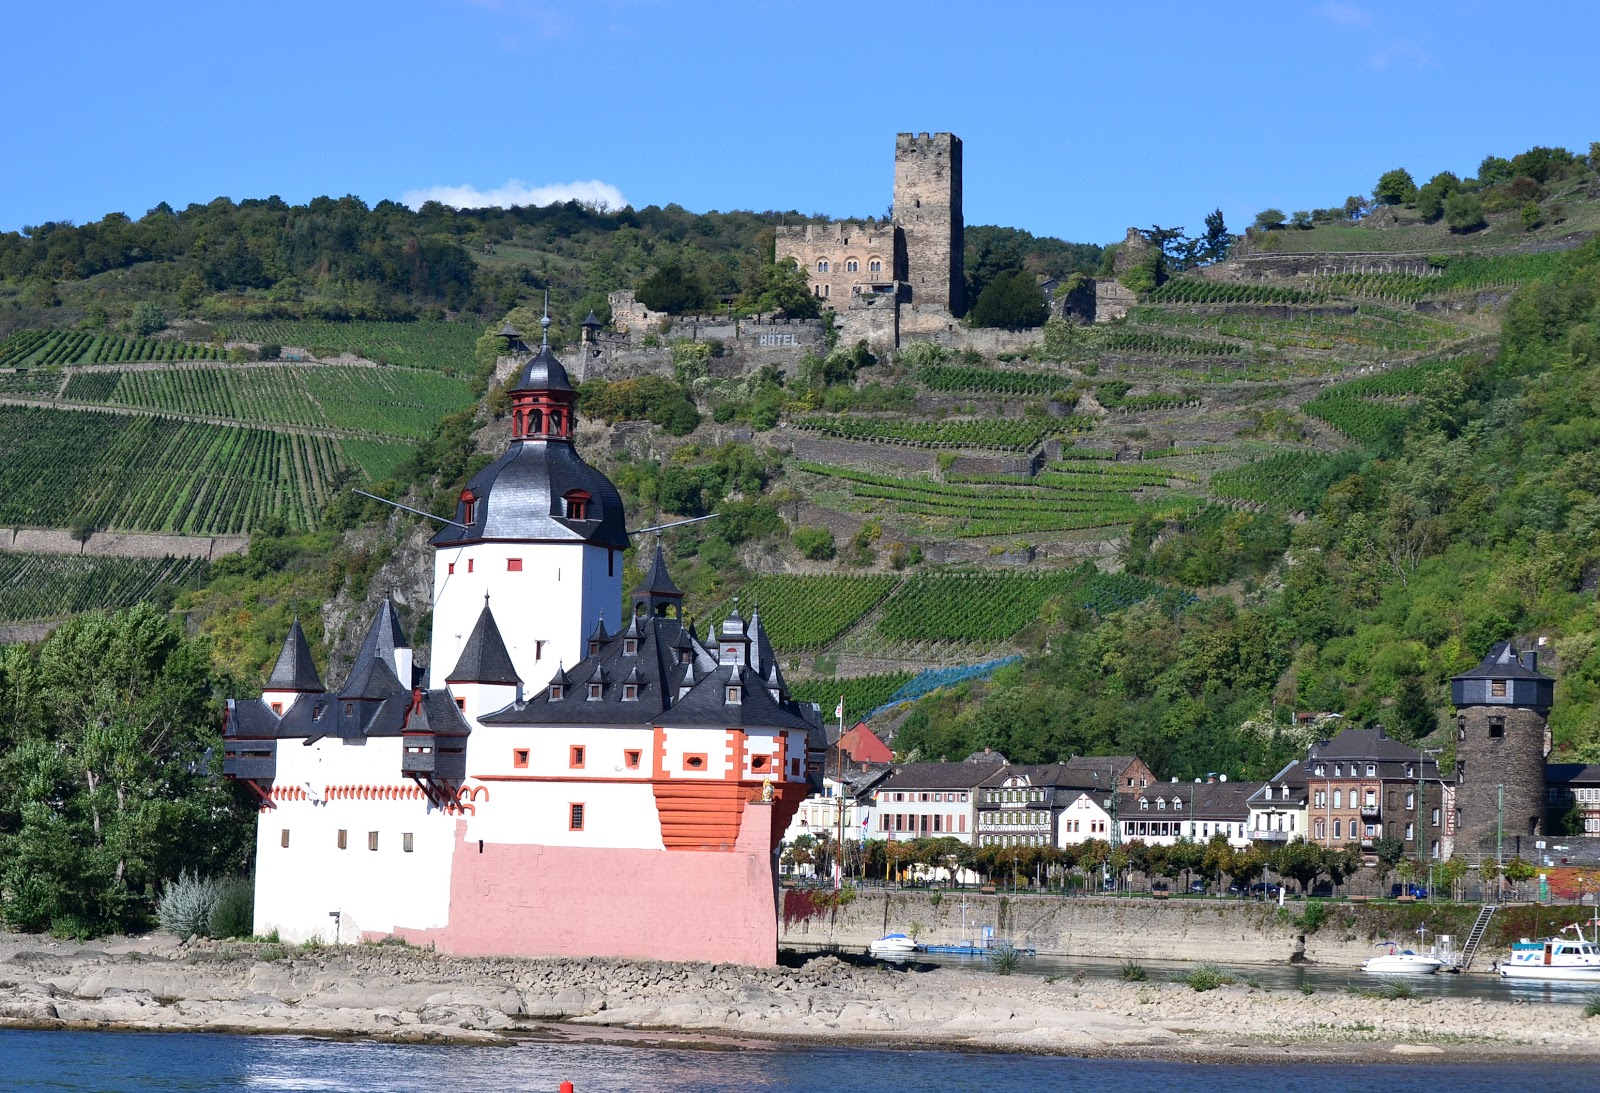 A parting shot of Gutenfels and Pfalzgrafenstein Castles.